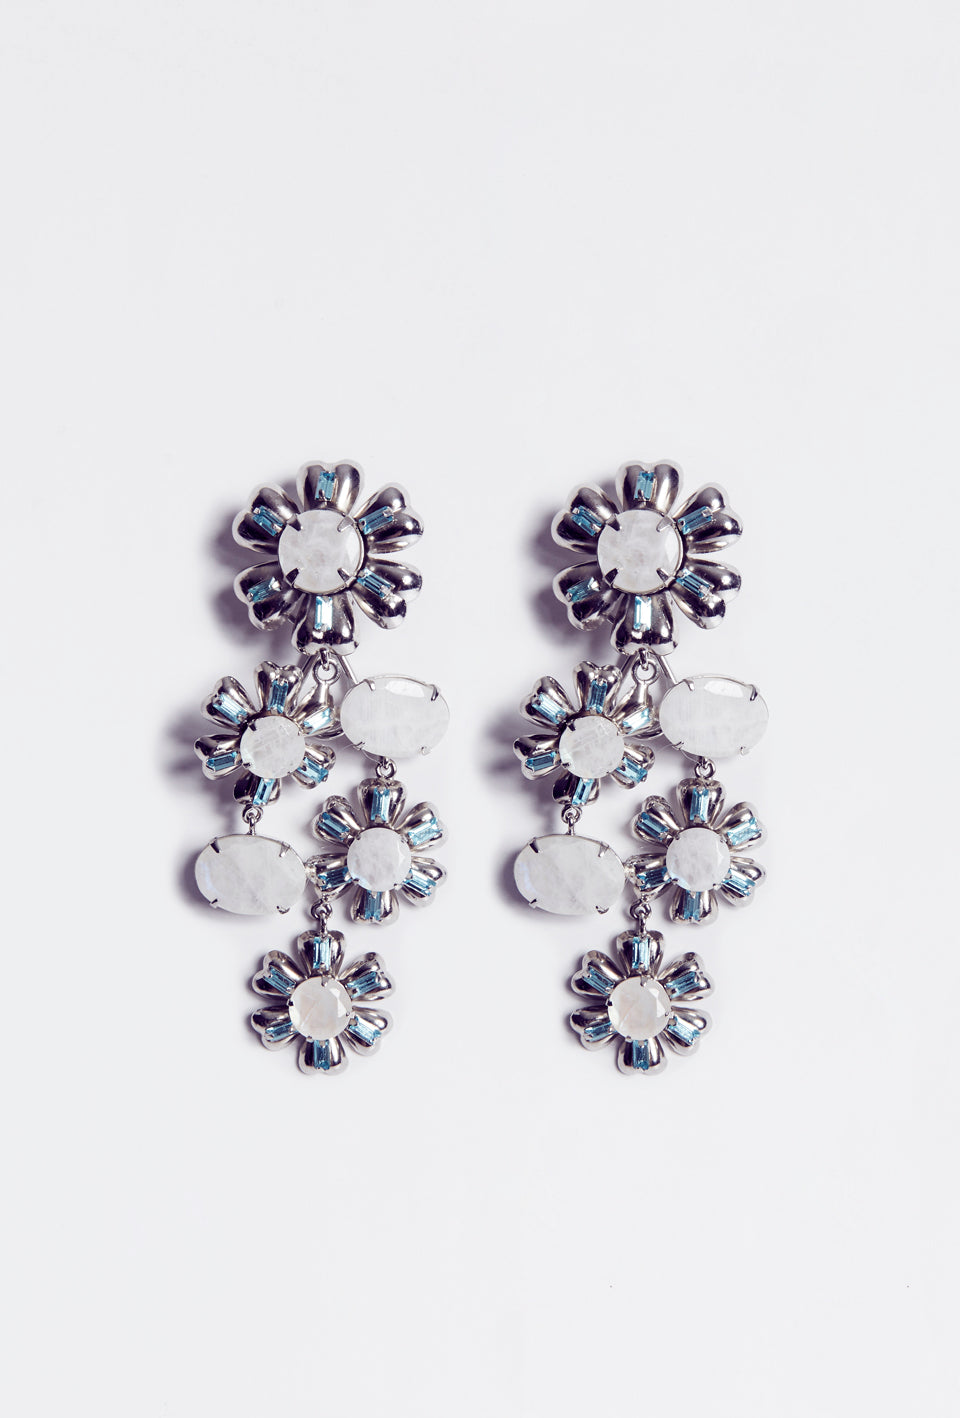 Cascading Blue Quartz Flower Earrings